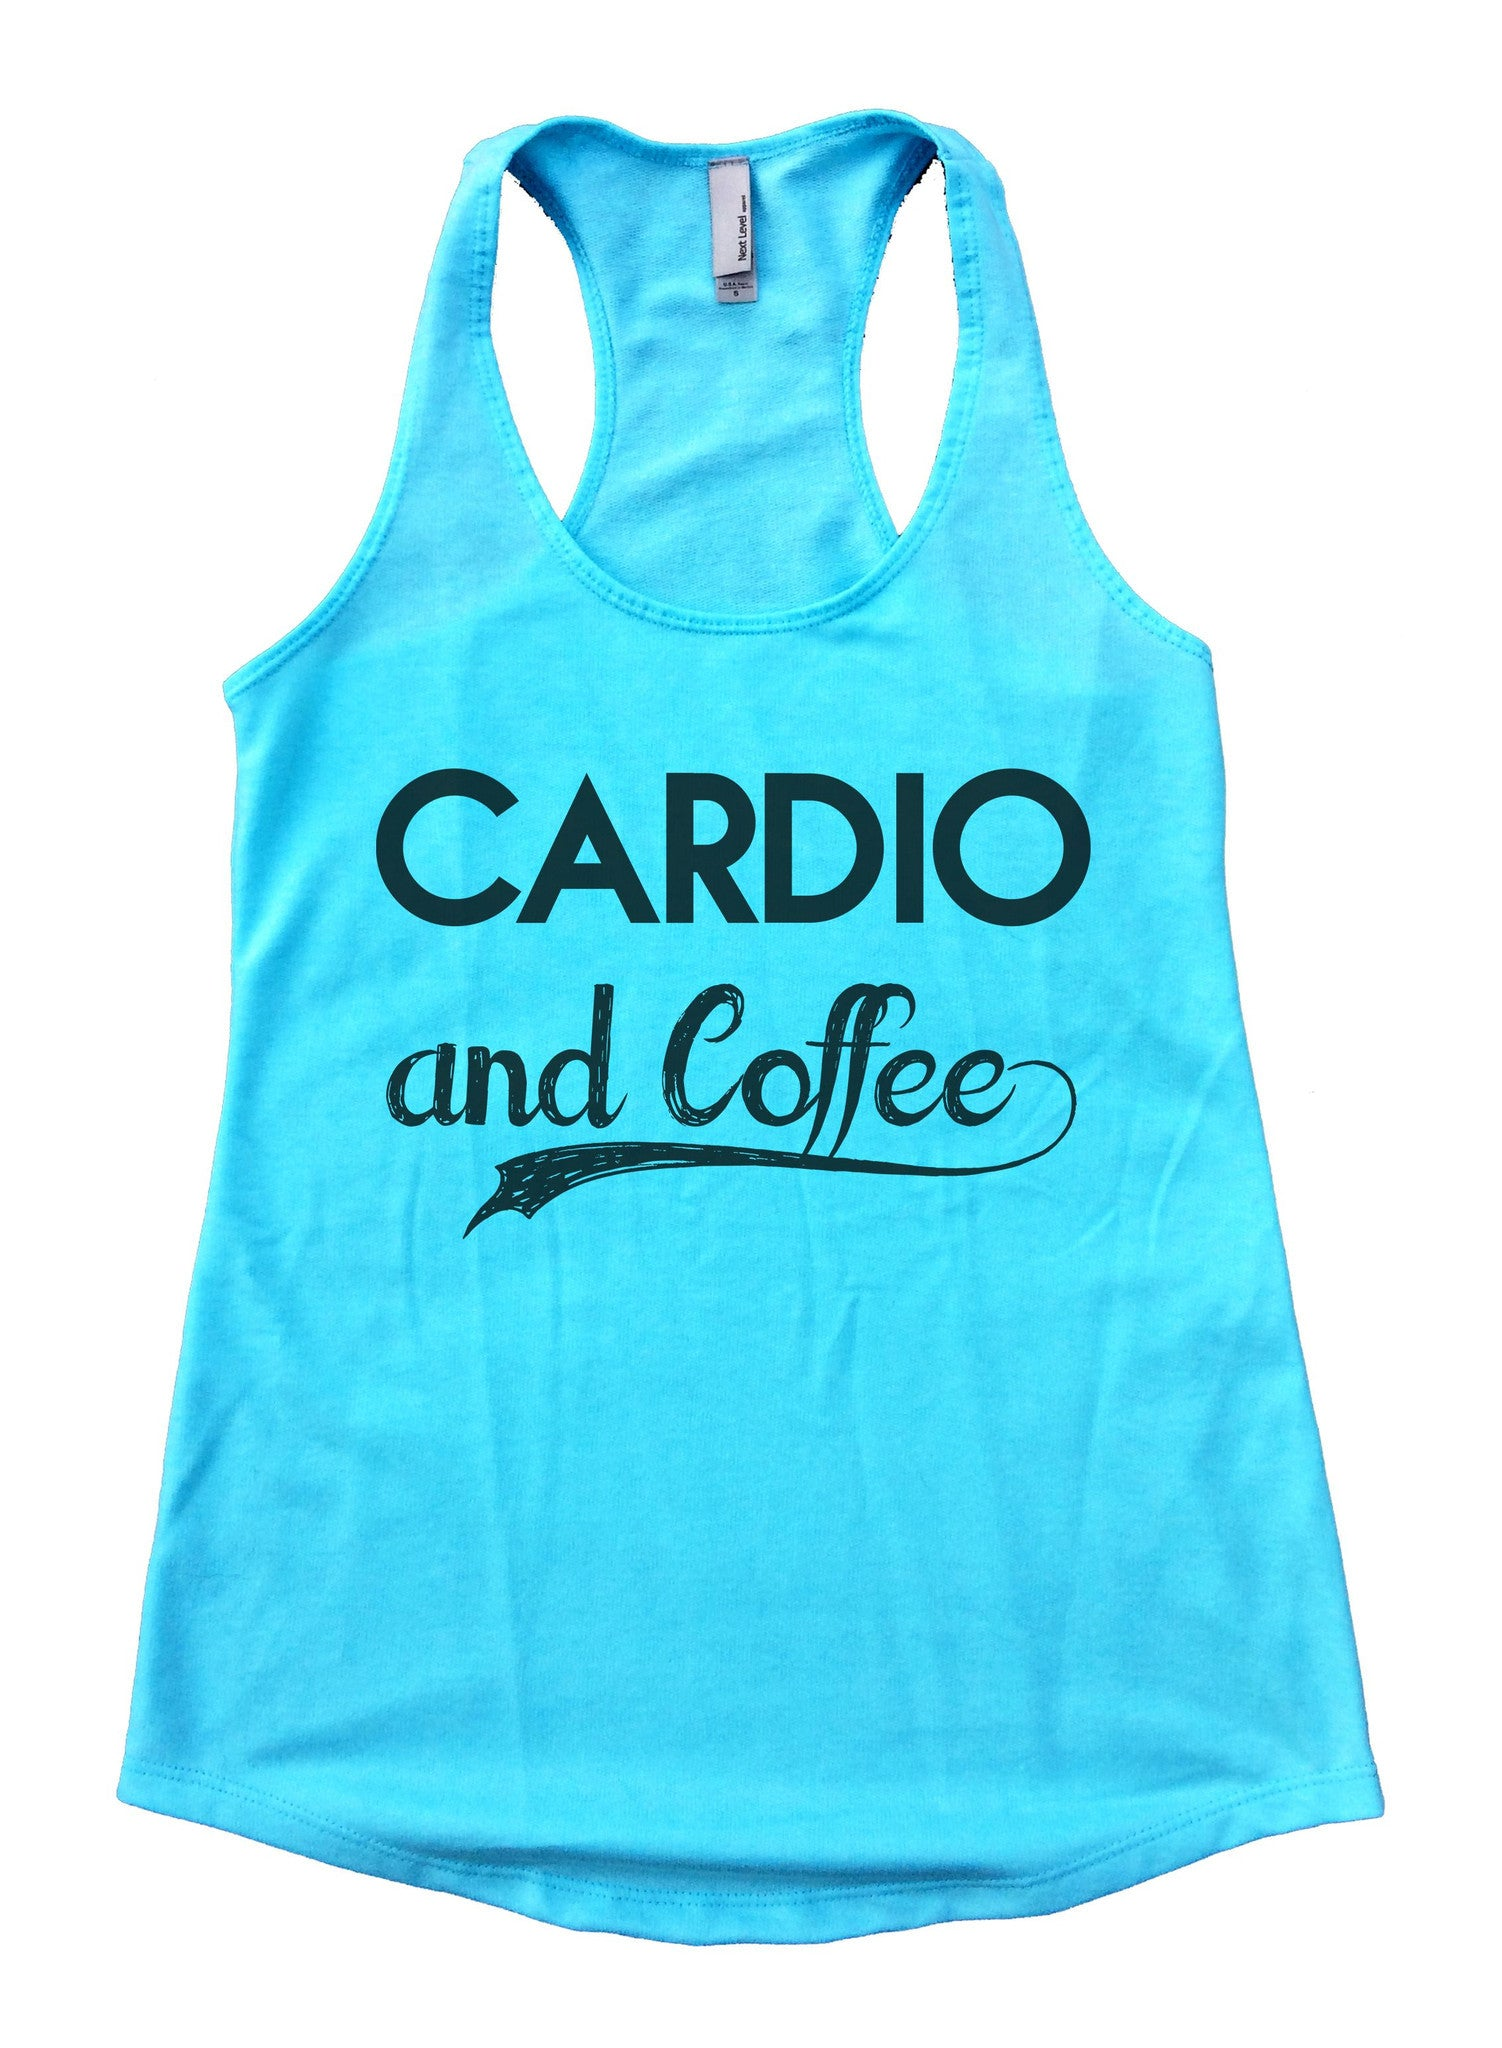 Cardio And Coffee Womens Workout Tank Top F797 - Funny Shirts Tank Tops Burnouts and Triblends  - 1